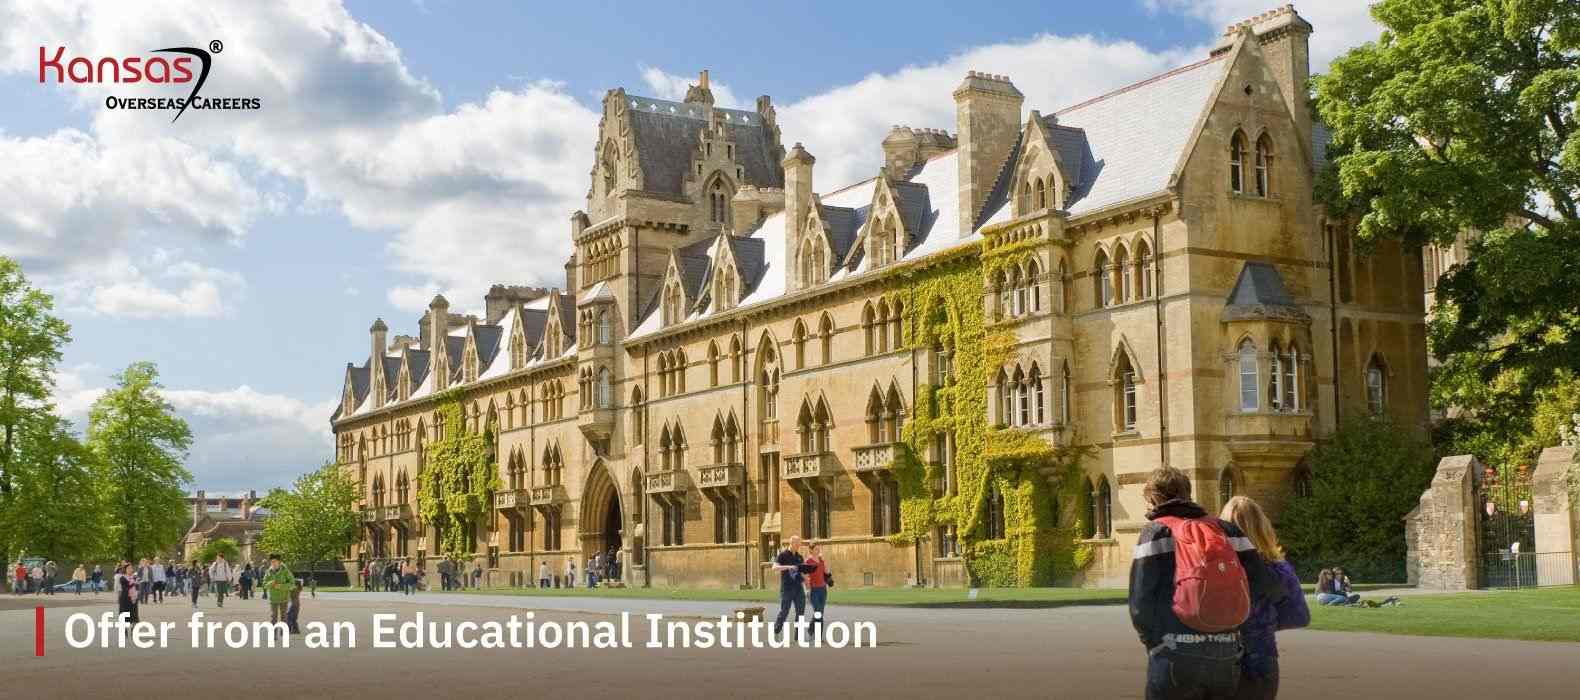 Offer-from-an-Educational-Institution